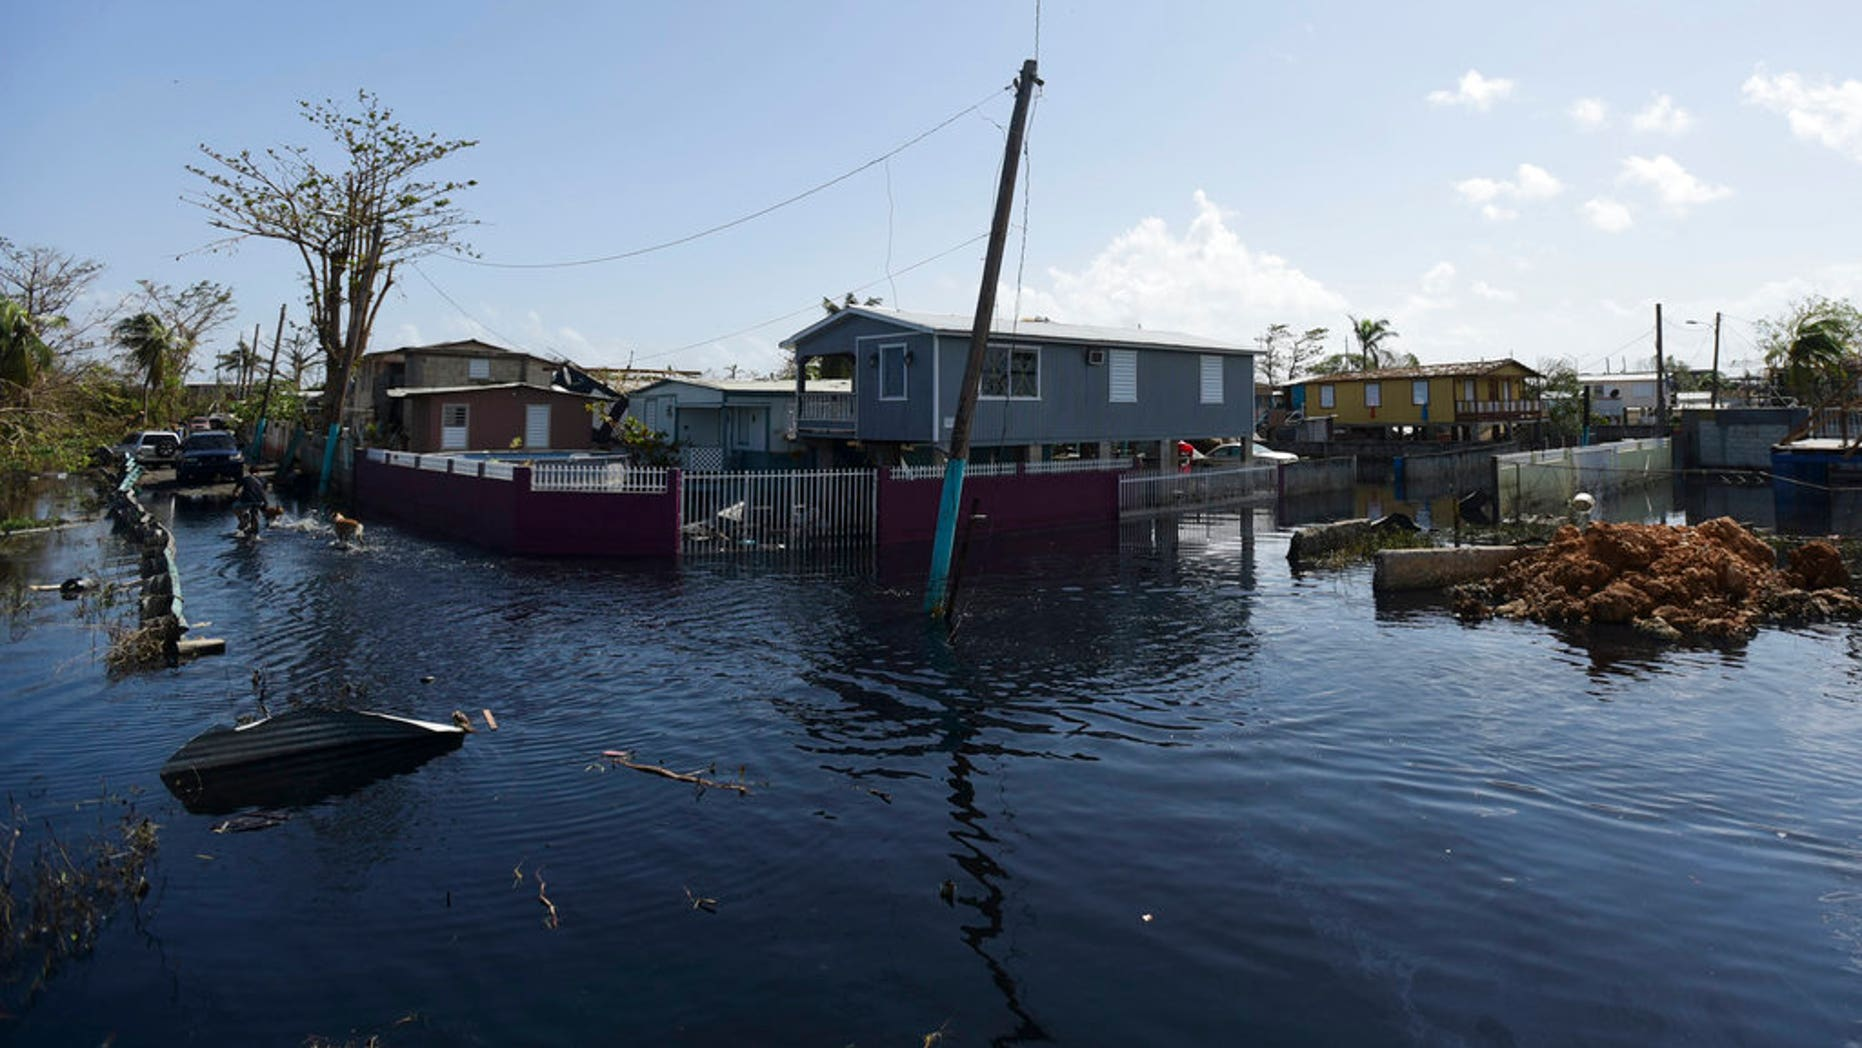 Homes in the Juana Matos community are surrounded by flood waters in Catano, Puerto Rico, Thursday, Sept. 28, 2017, one week after the passage of Hurricane Maria. The aftermath of the powerful storm has resulted in a near-total shutdown of the U.S. territory's economy that could last for weeks and has many people running seriously low on cash and worrying that it will become even harder to survive on this storm-ravaged island. (AP Photo/Carlos Giusti)